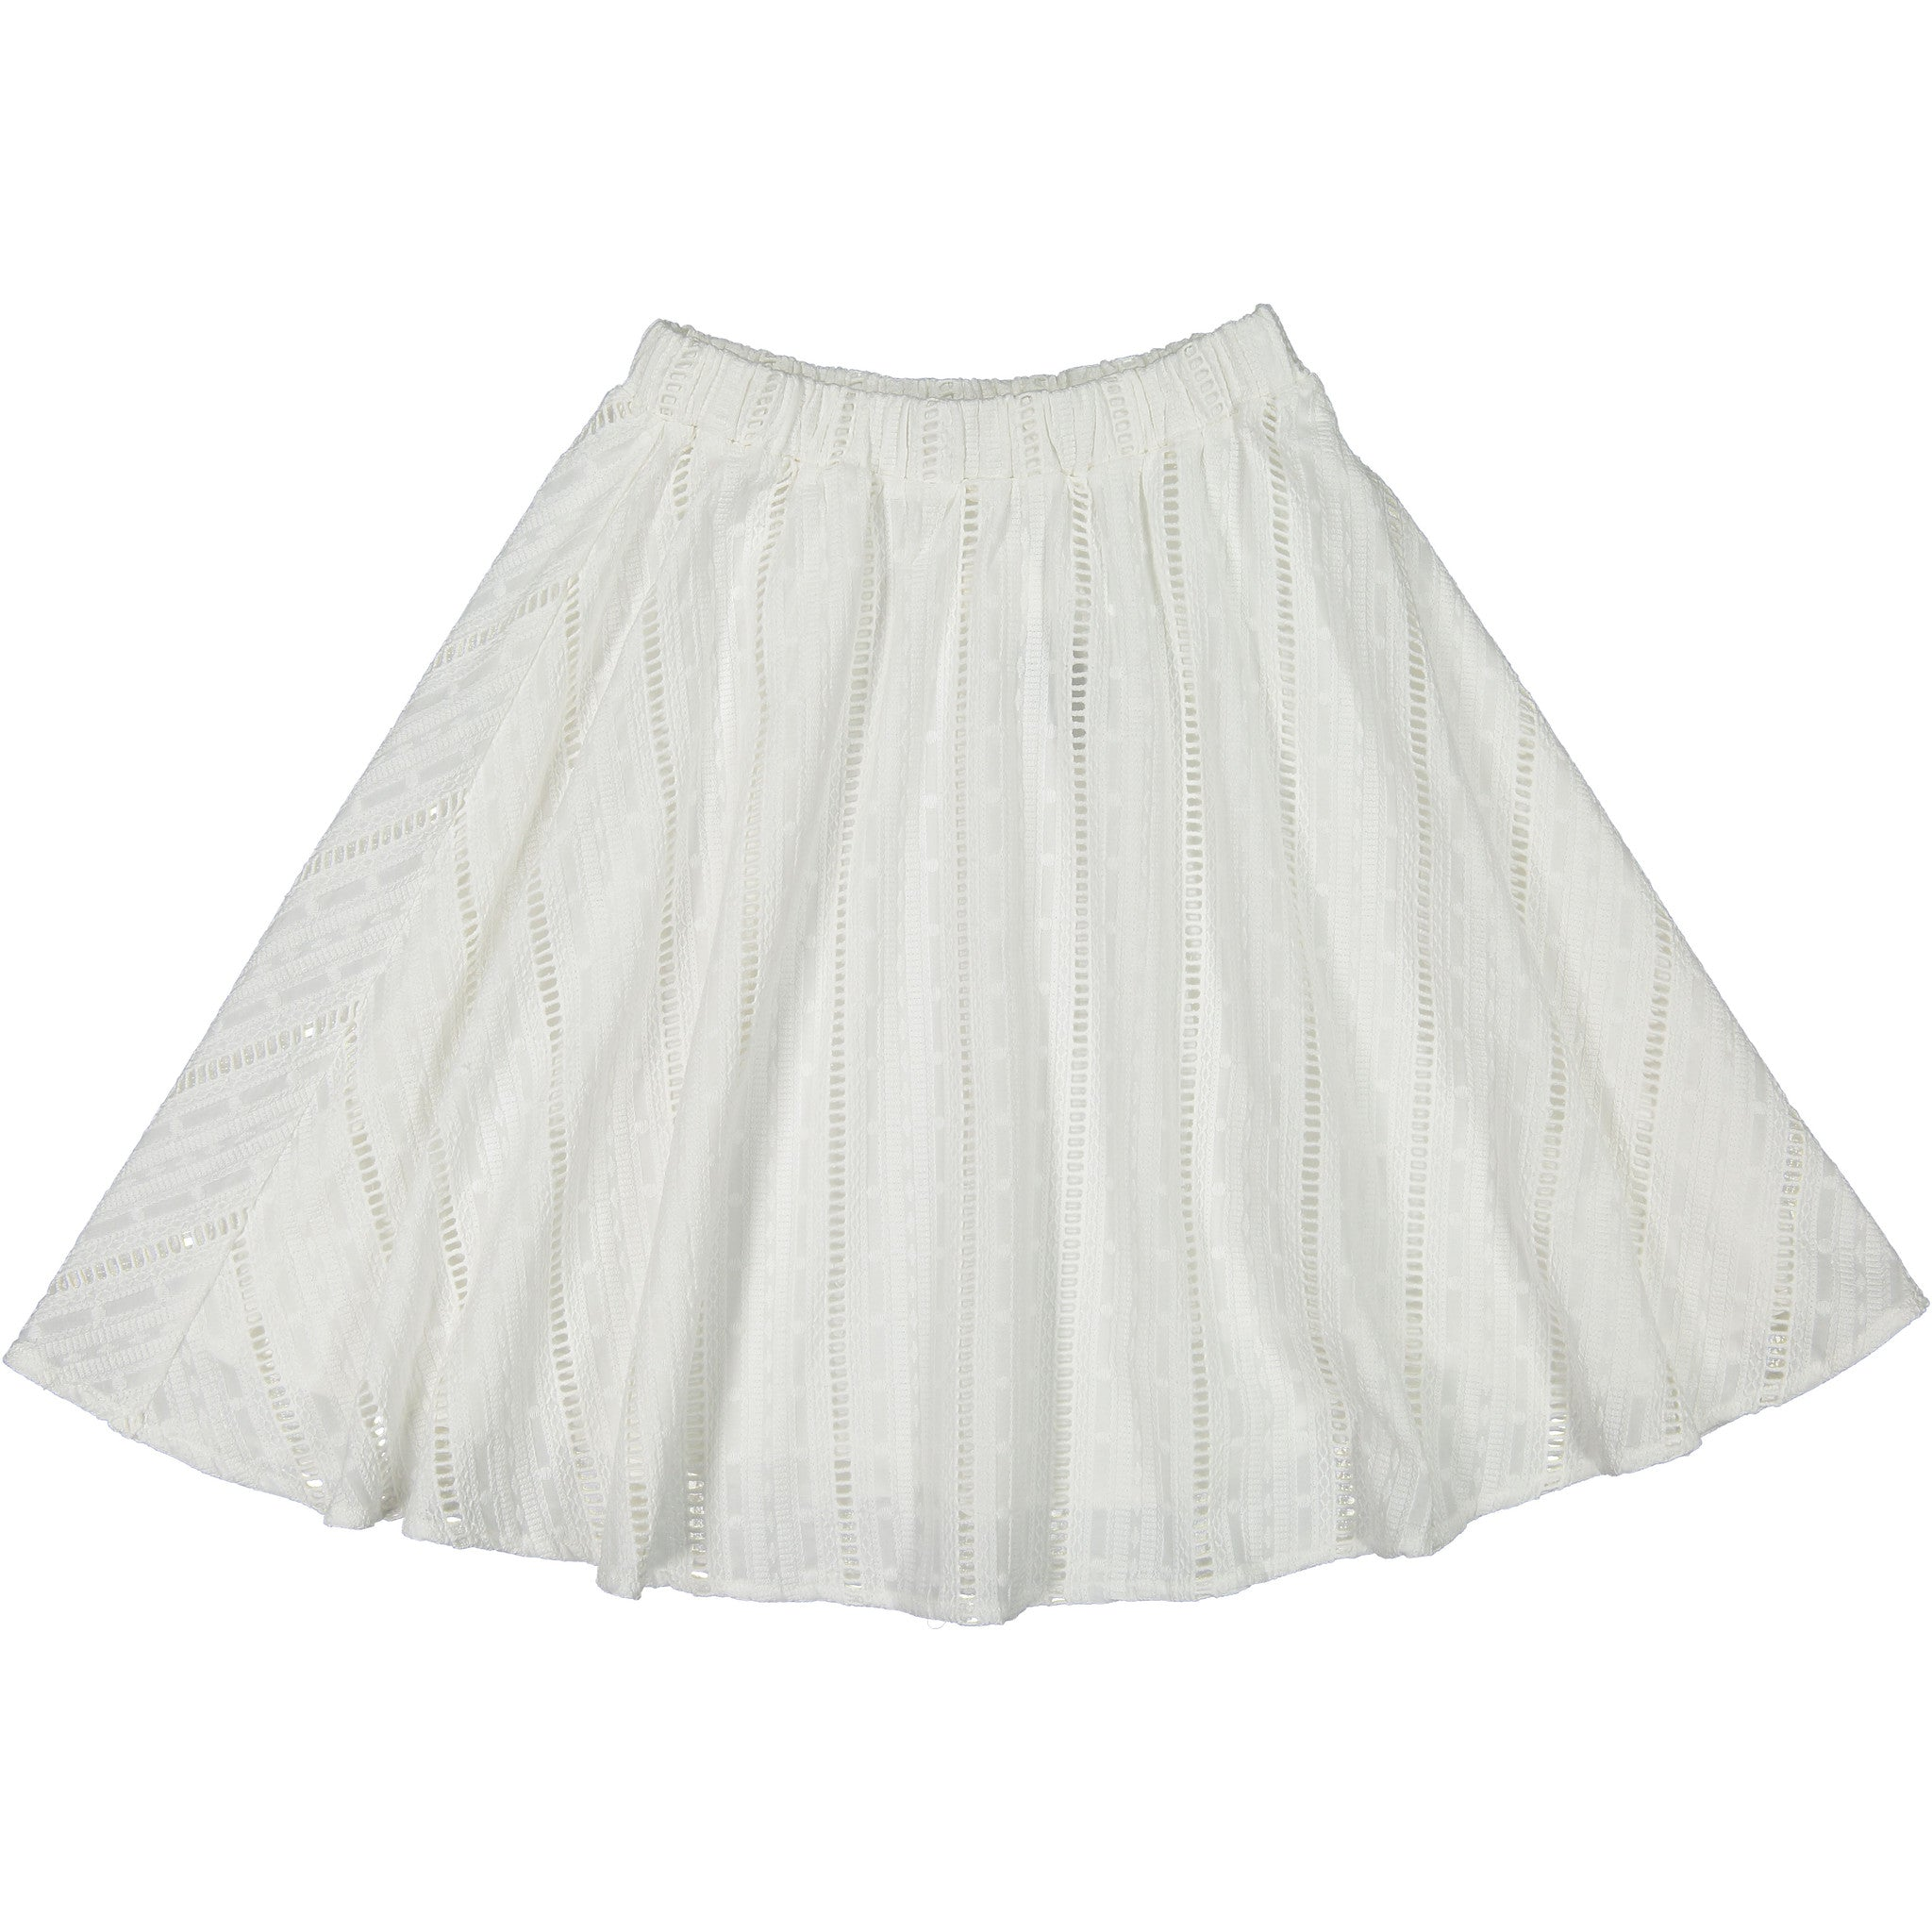 ROWE White Eyelet Skirt - Ladida